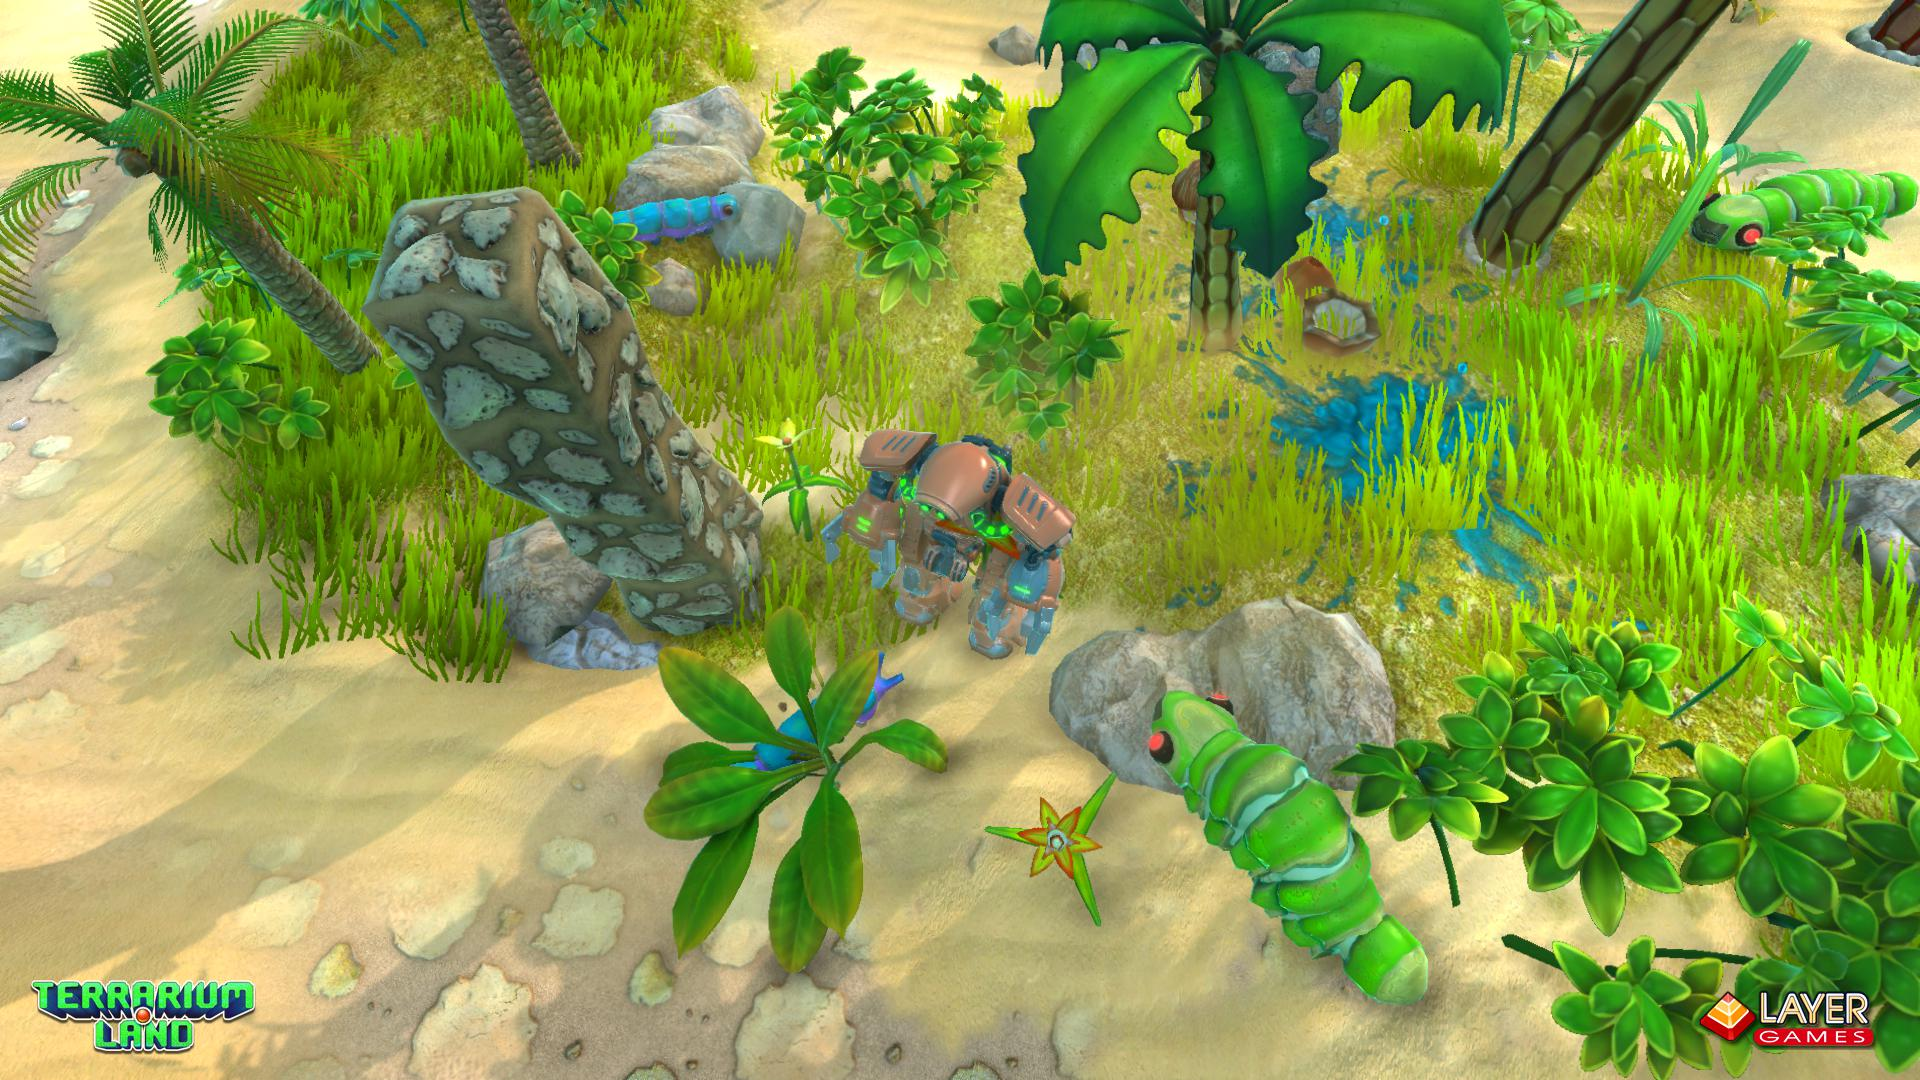 Terrarium Land level. Valley